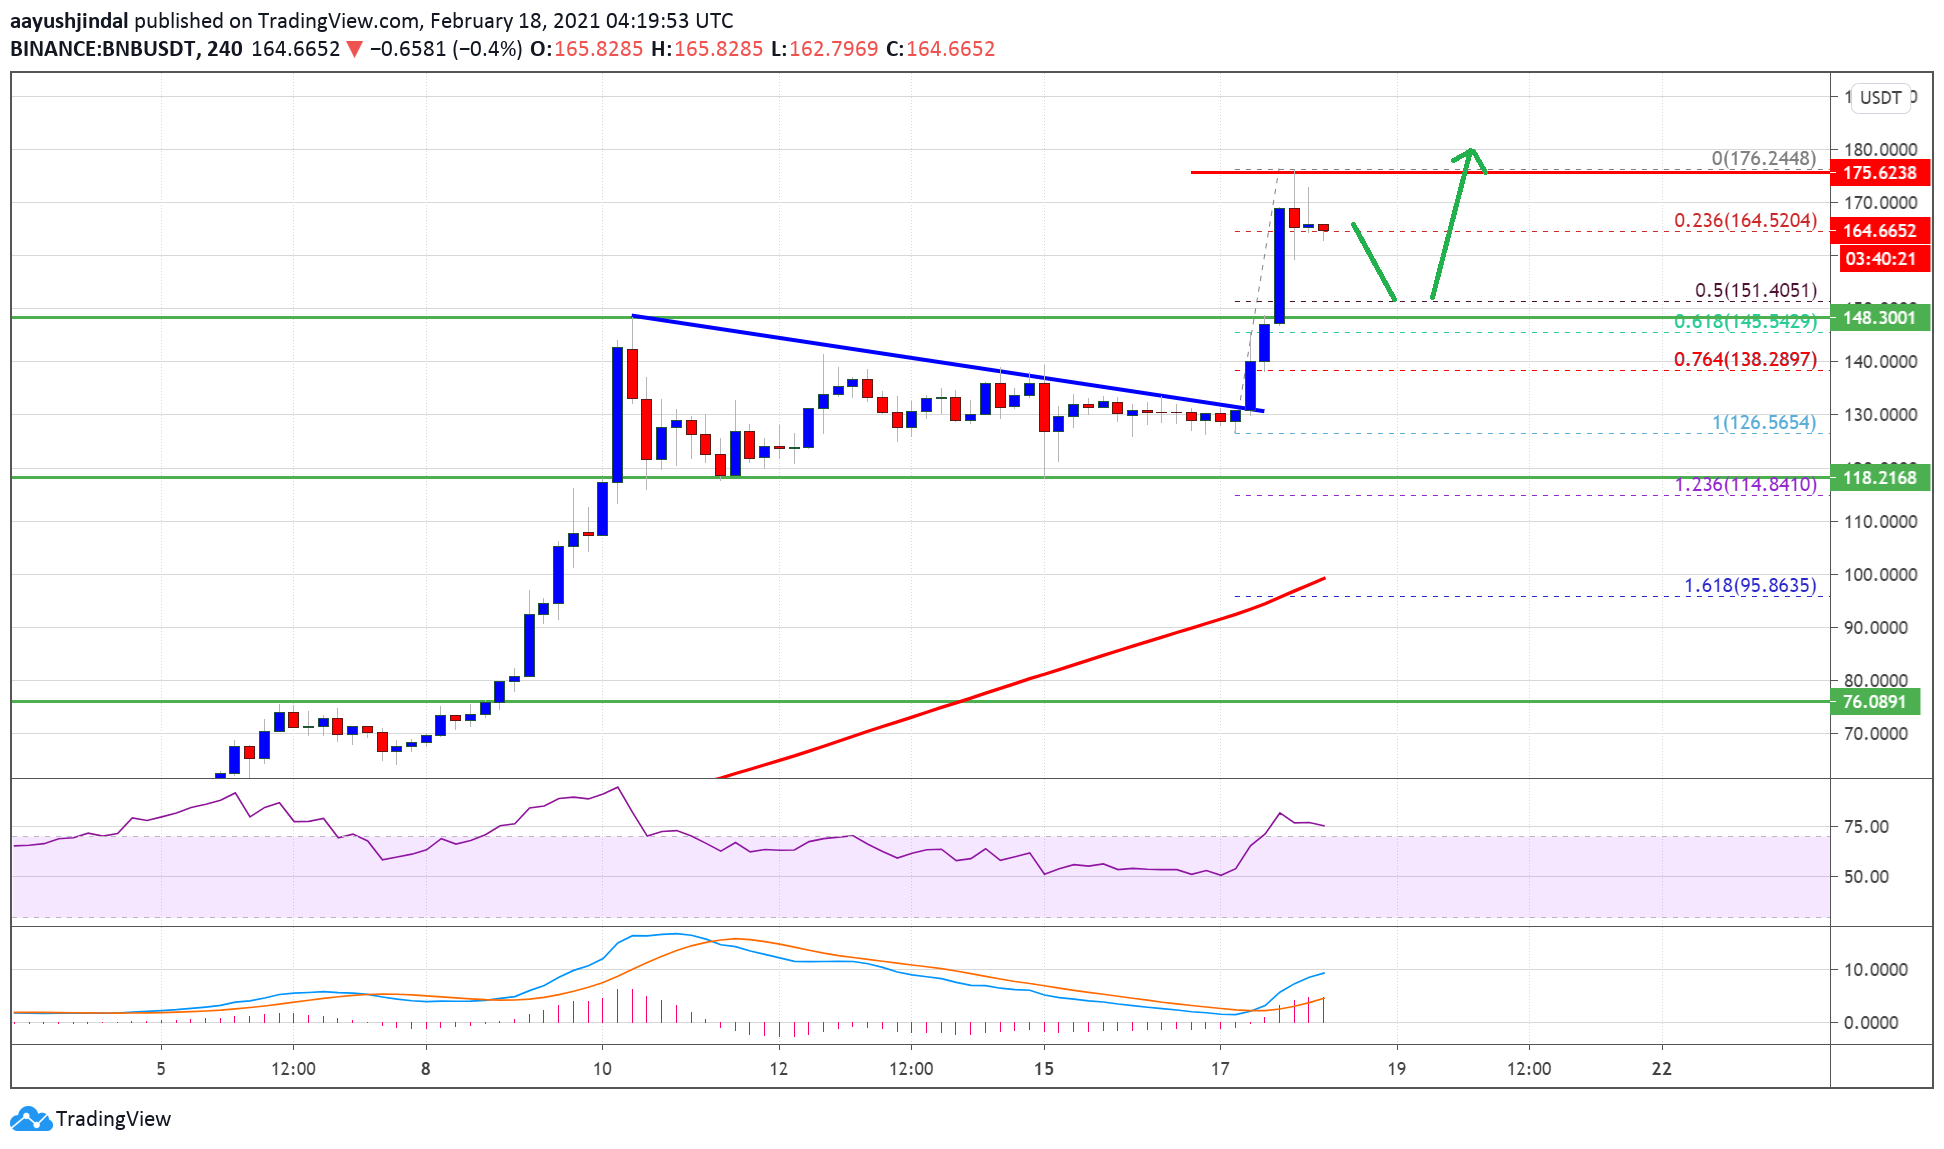 Charted: Binance Coin (BNB) Trades To Record High At $175, $200 Still Possible